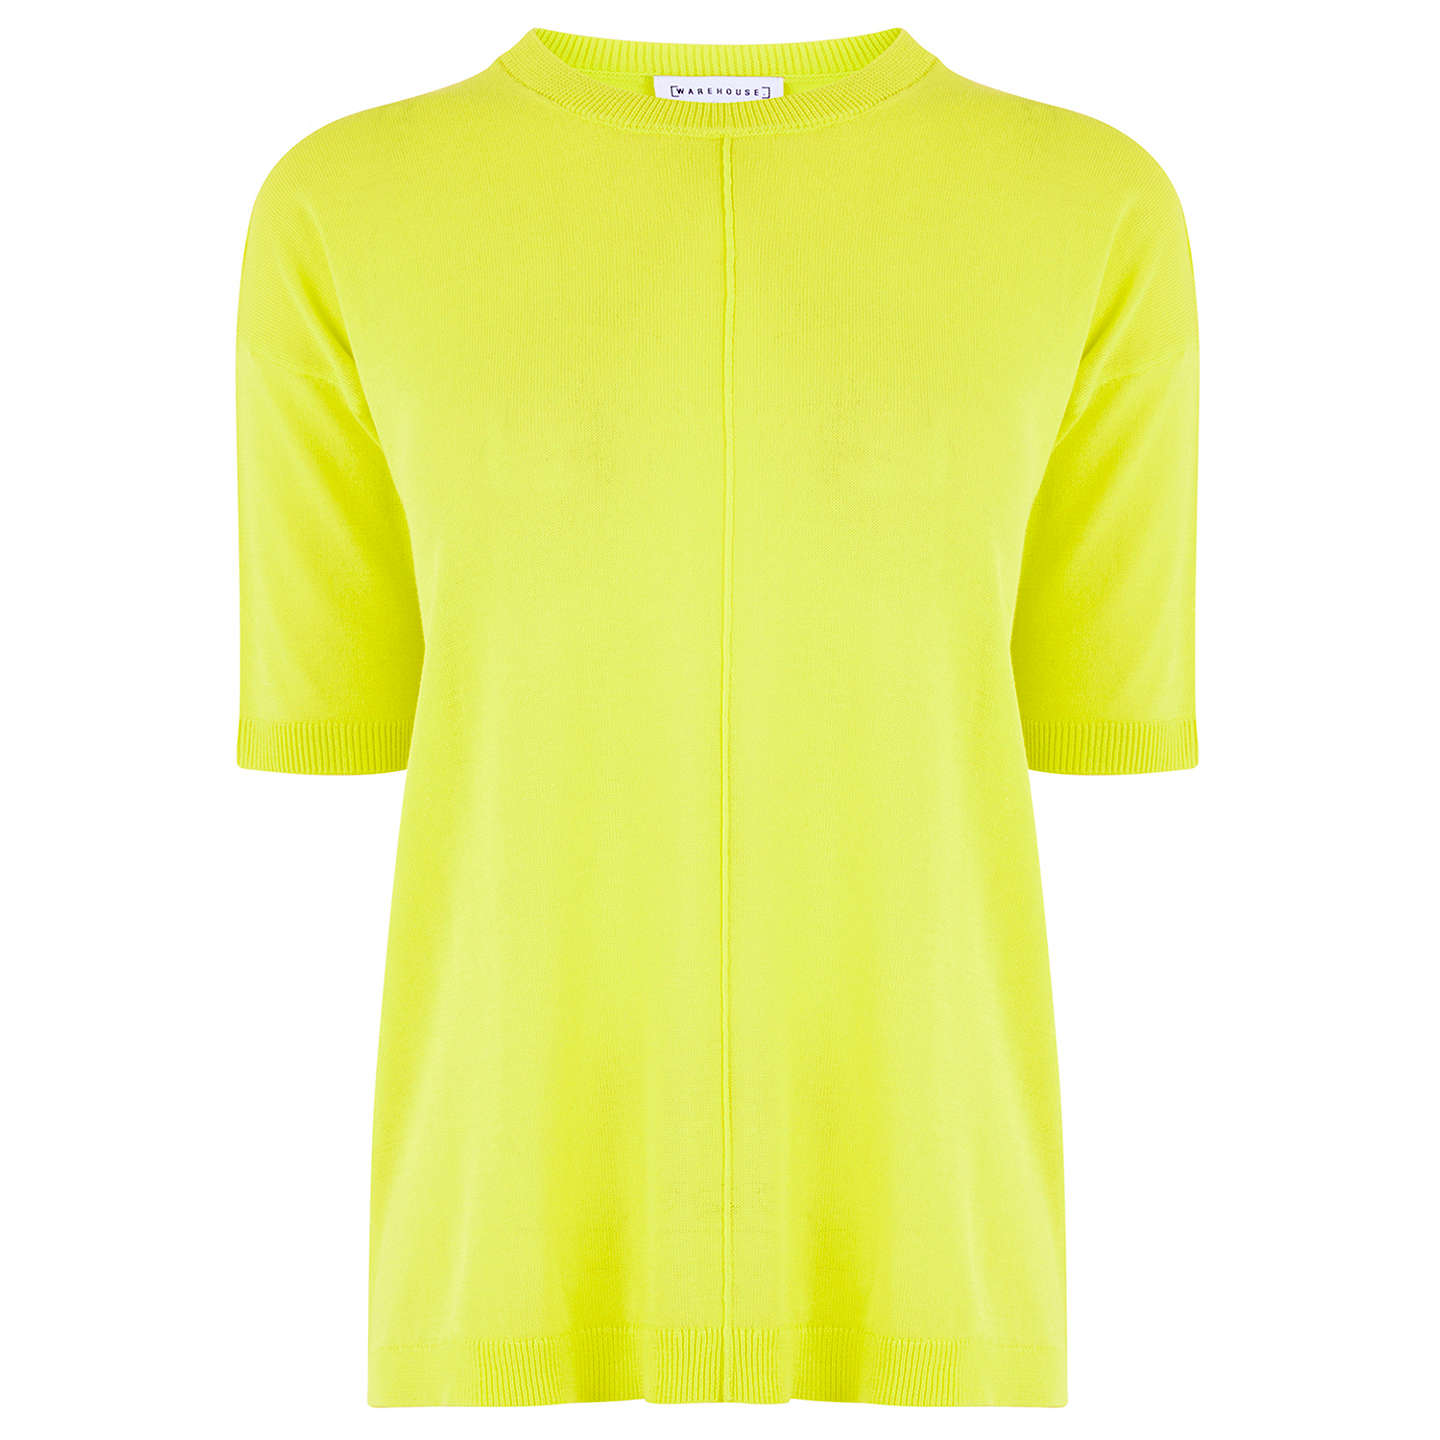 BuyWarehouse Boxy Knitted Top, Lime, S Online at johnlewis.com